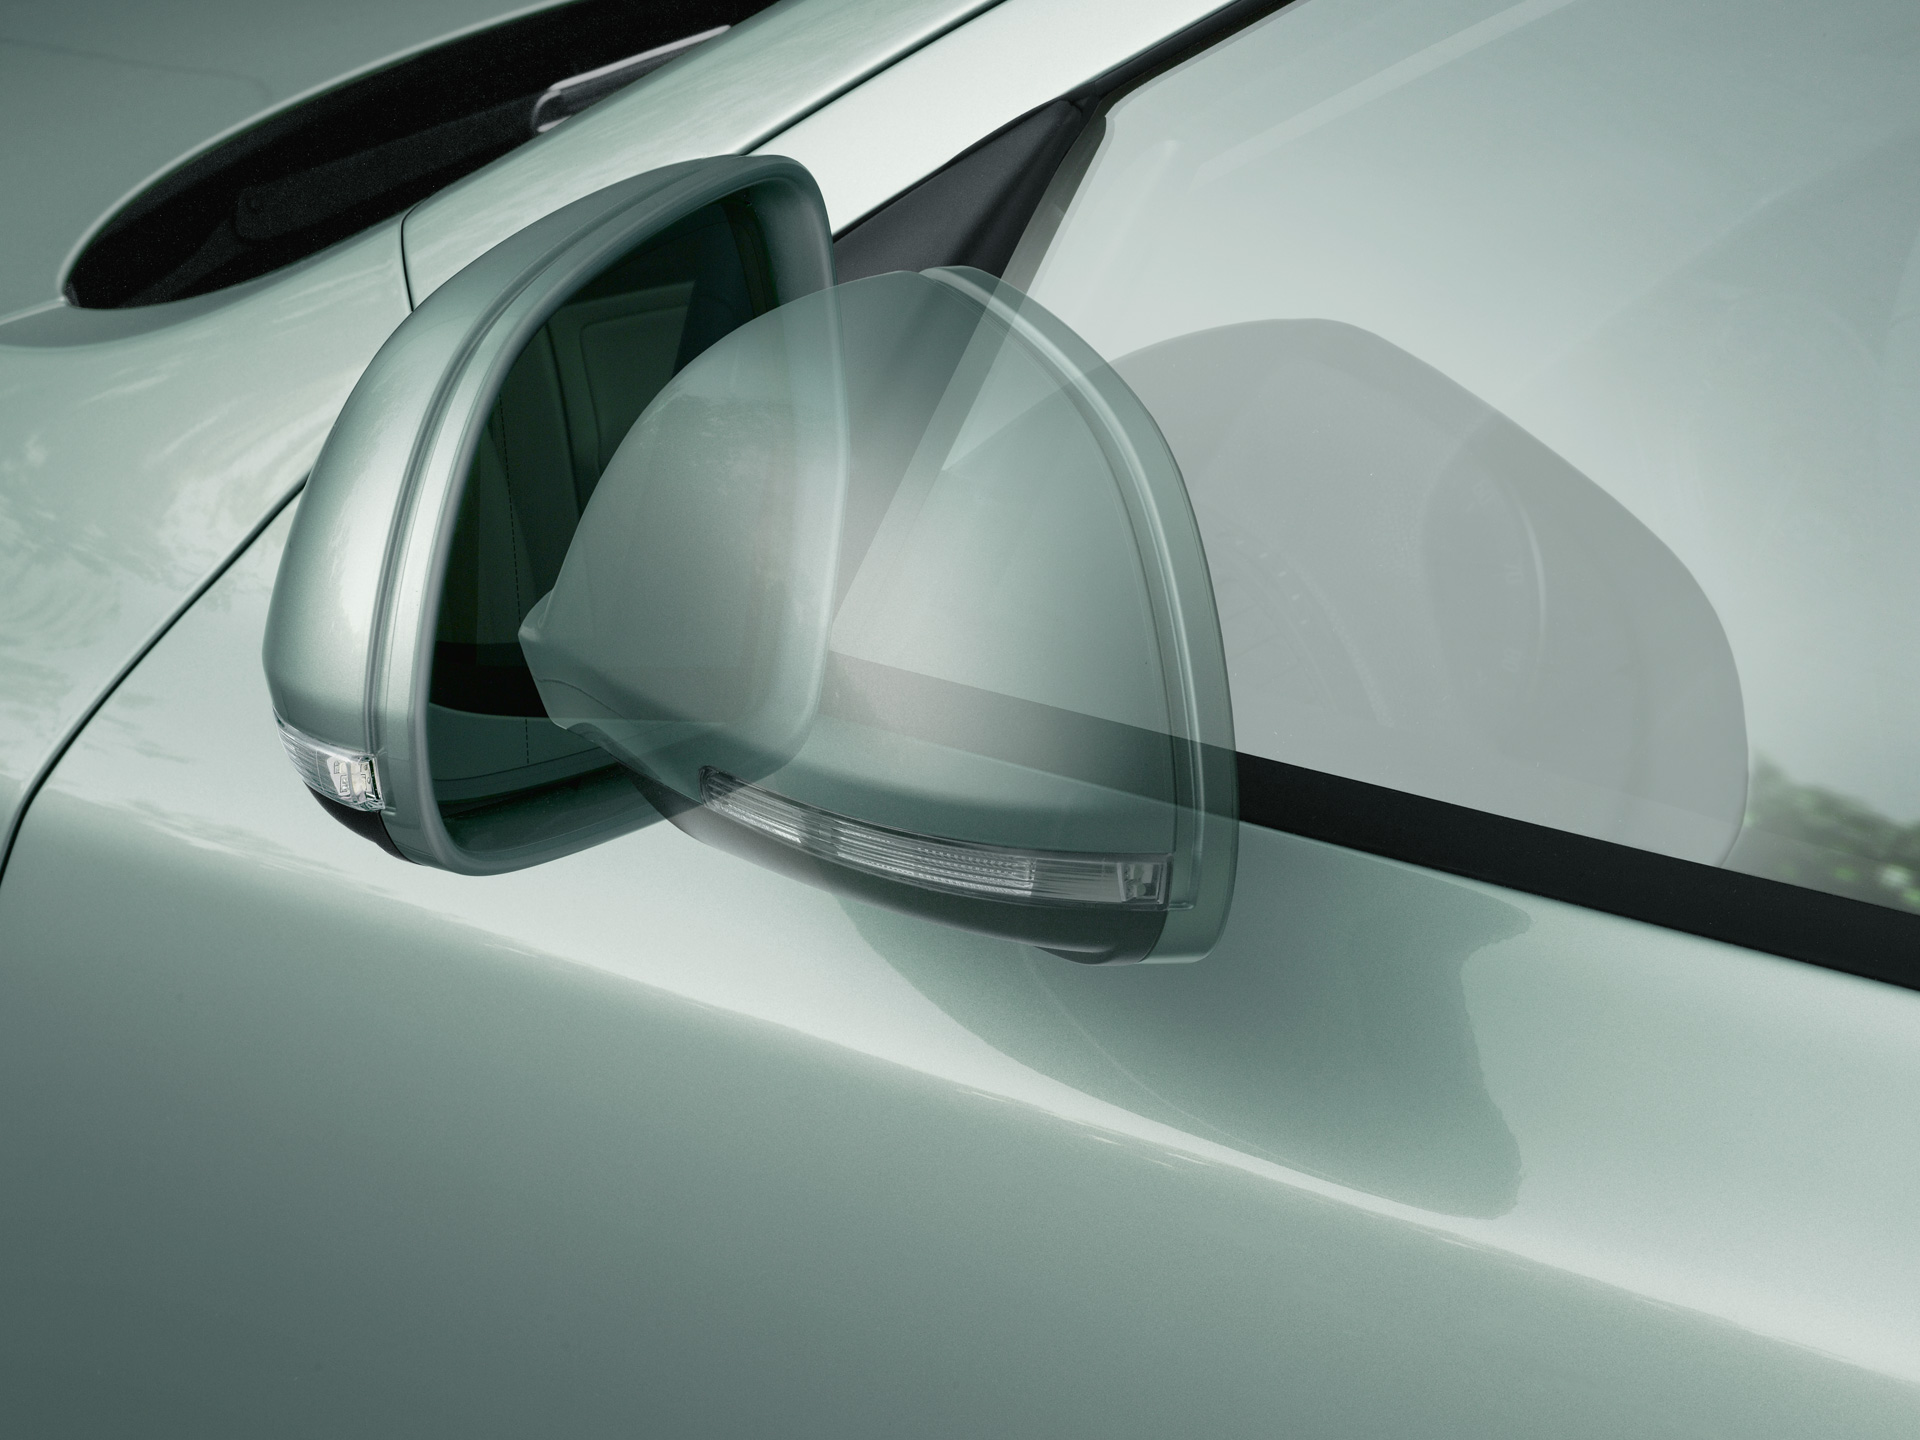 Automatically retractable external rearview mirrors with boarding spots designed to illuminate the entry area of the KODA Octavia